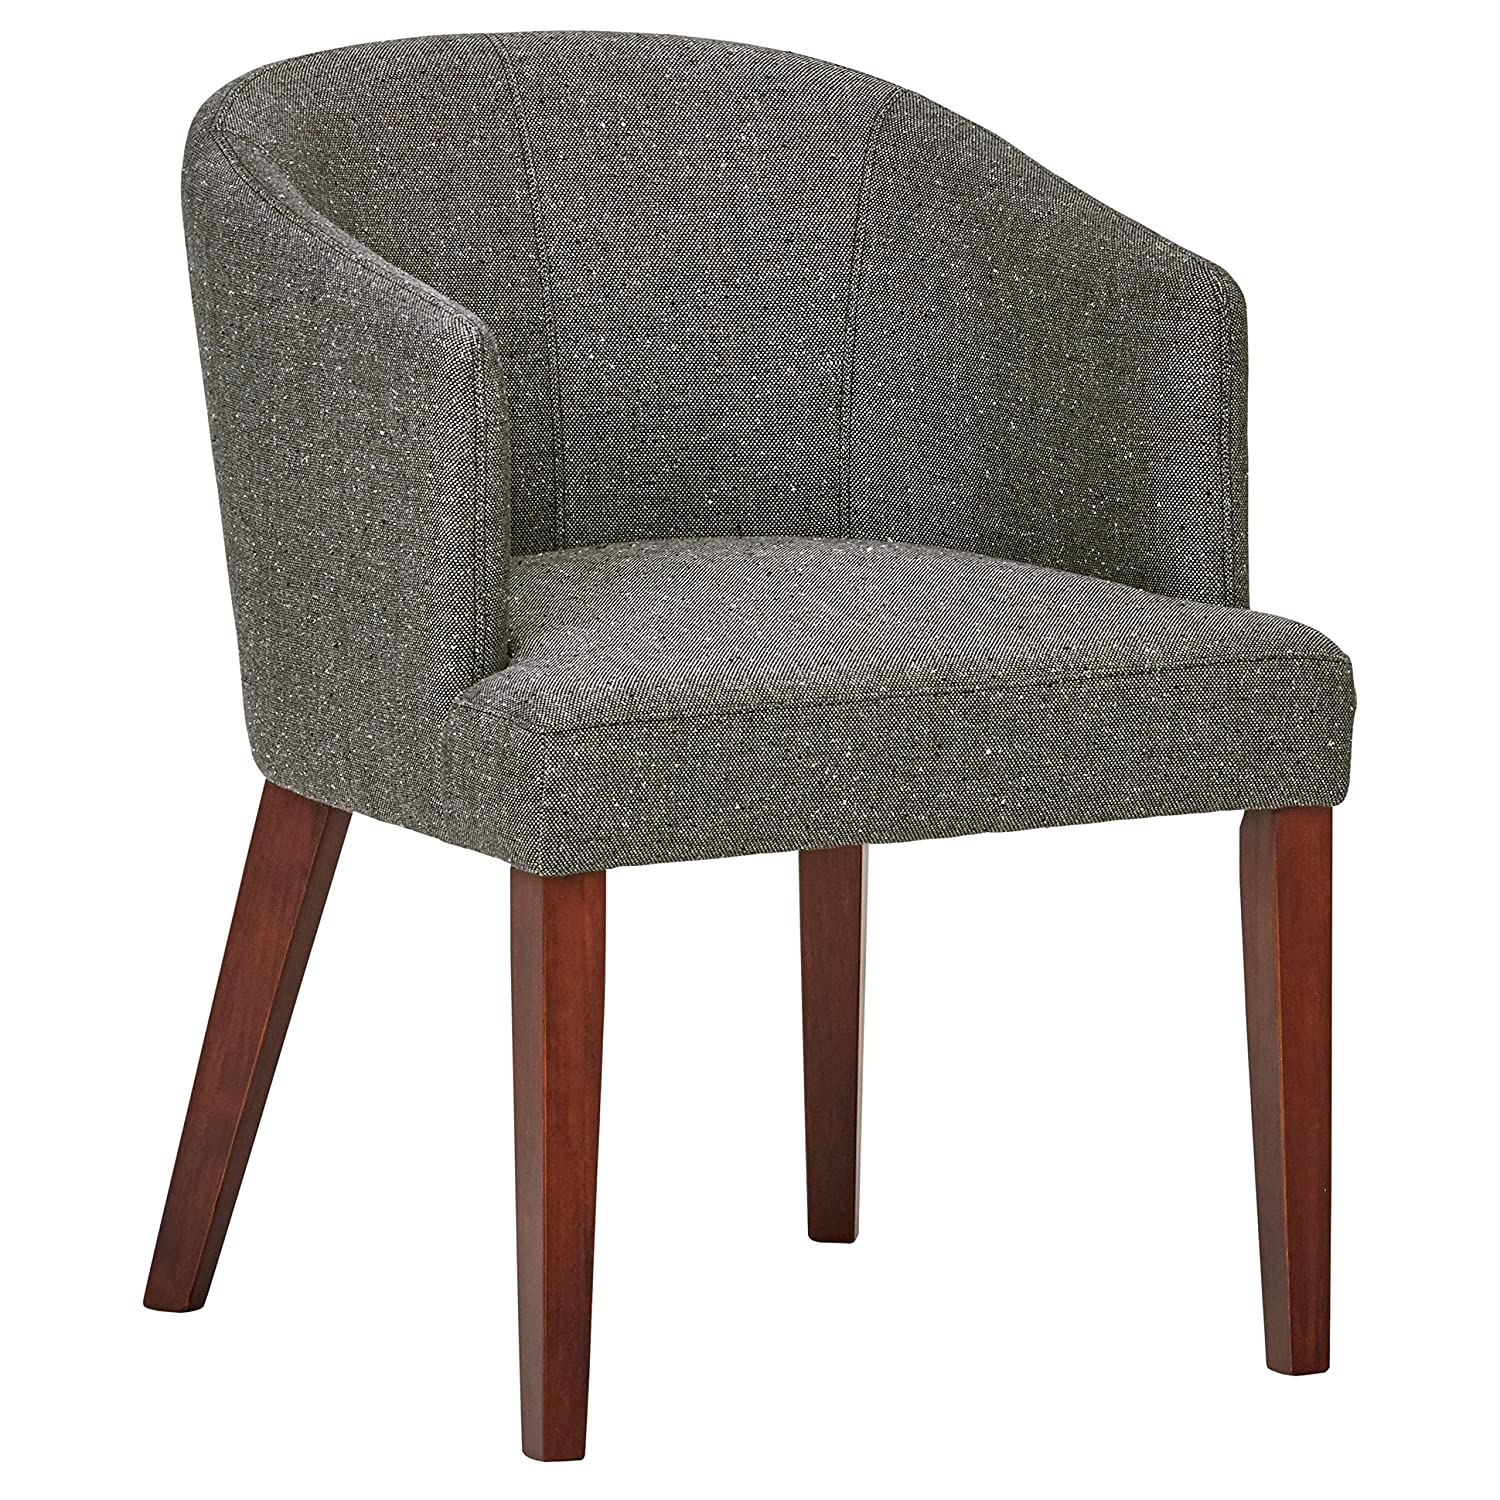 Rivet Alfred Mid-Century Modern Wide Curved Back Accent Kitchen Dining Room Chair, 25.2 W, Ash Grey